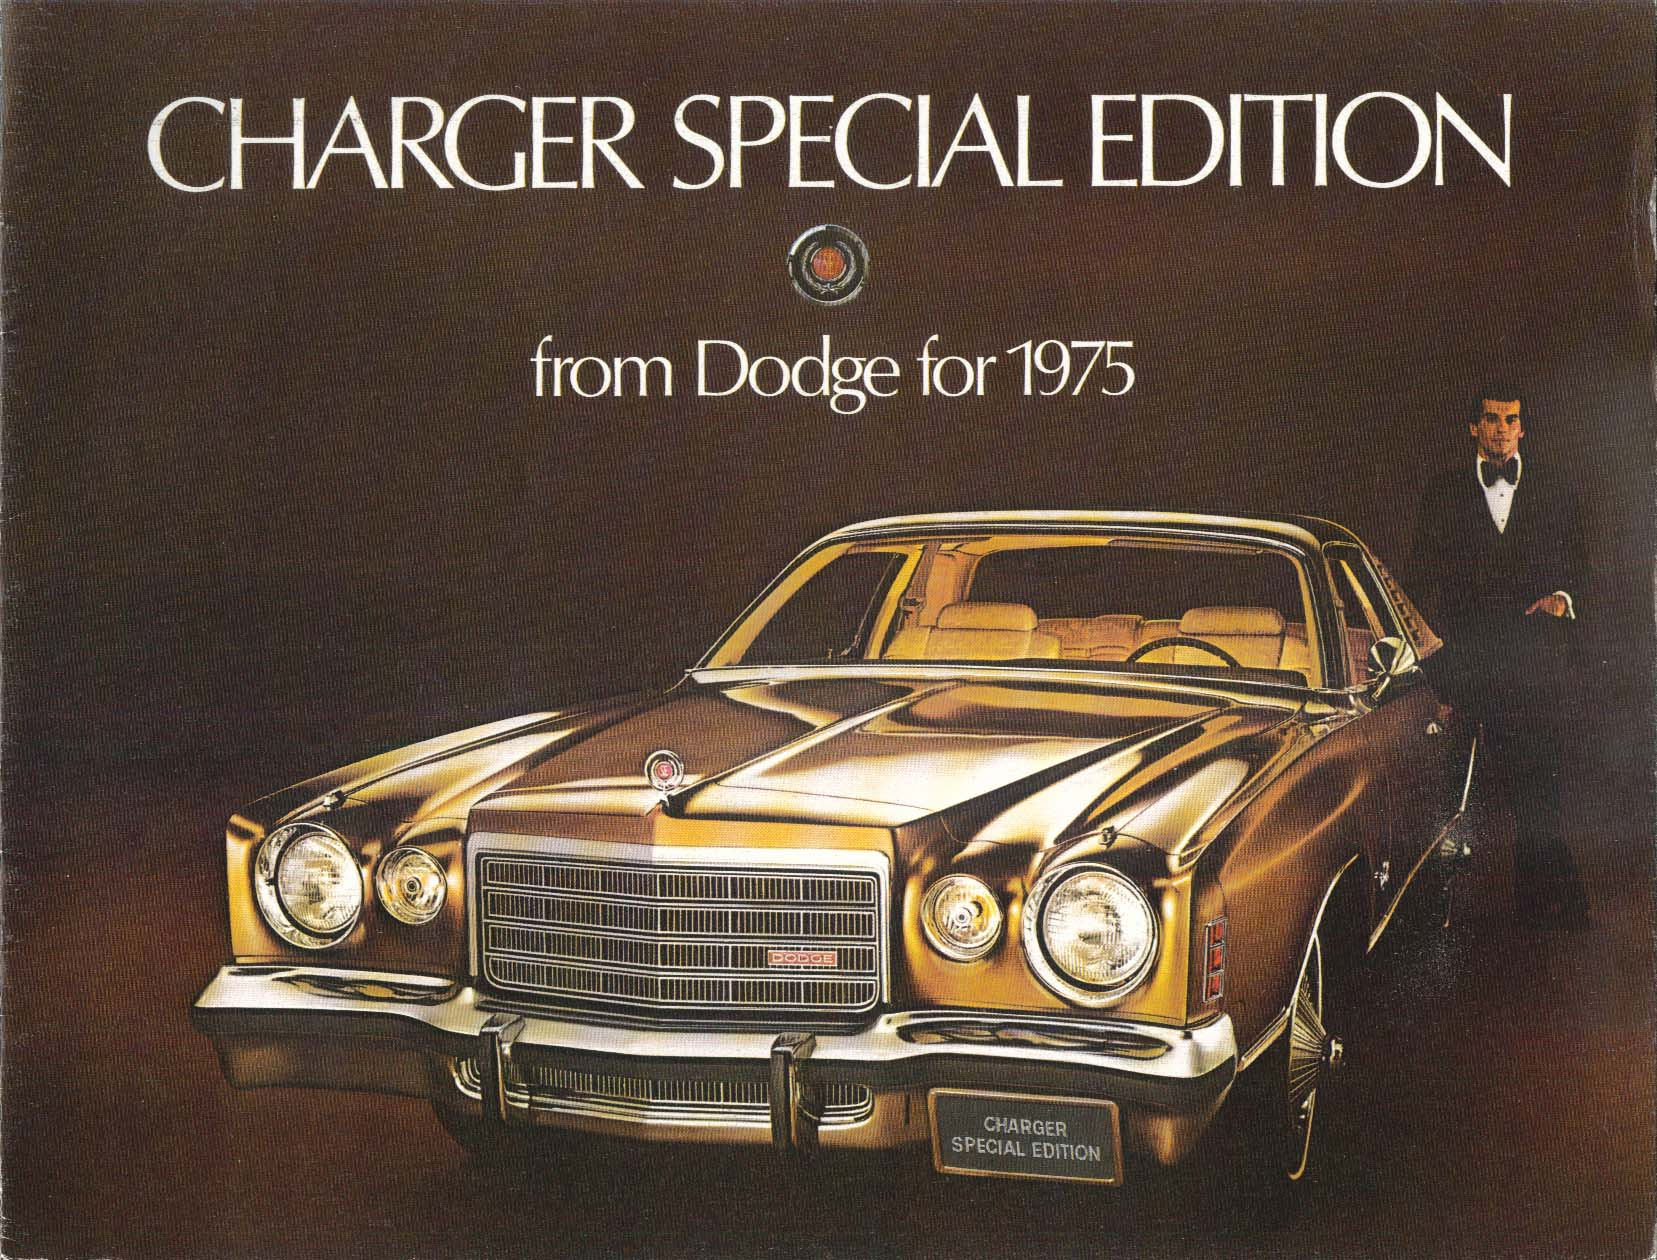 1975 Dodge Charger Special Edition brochure